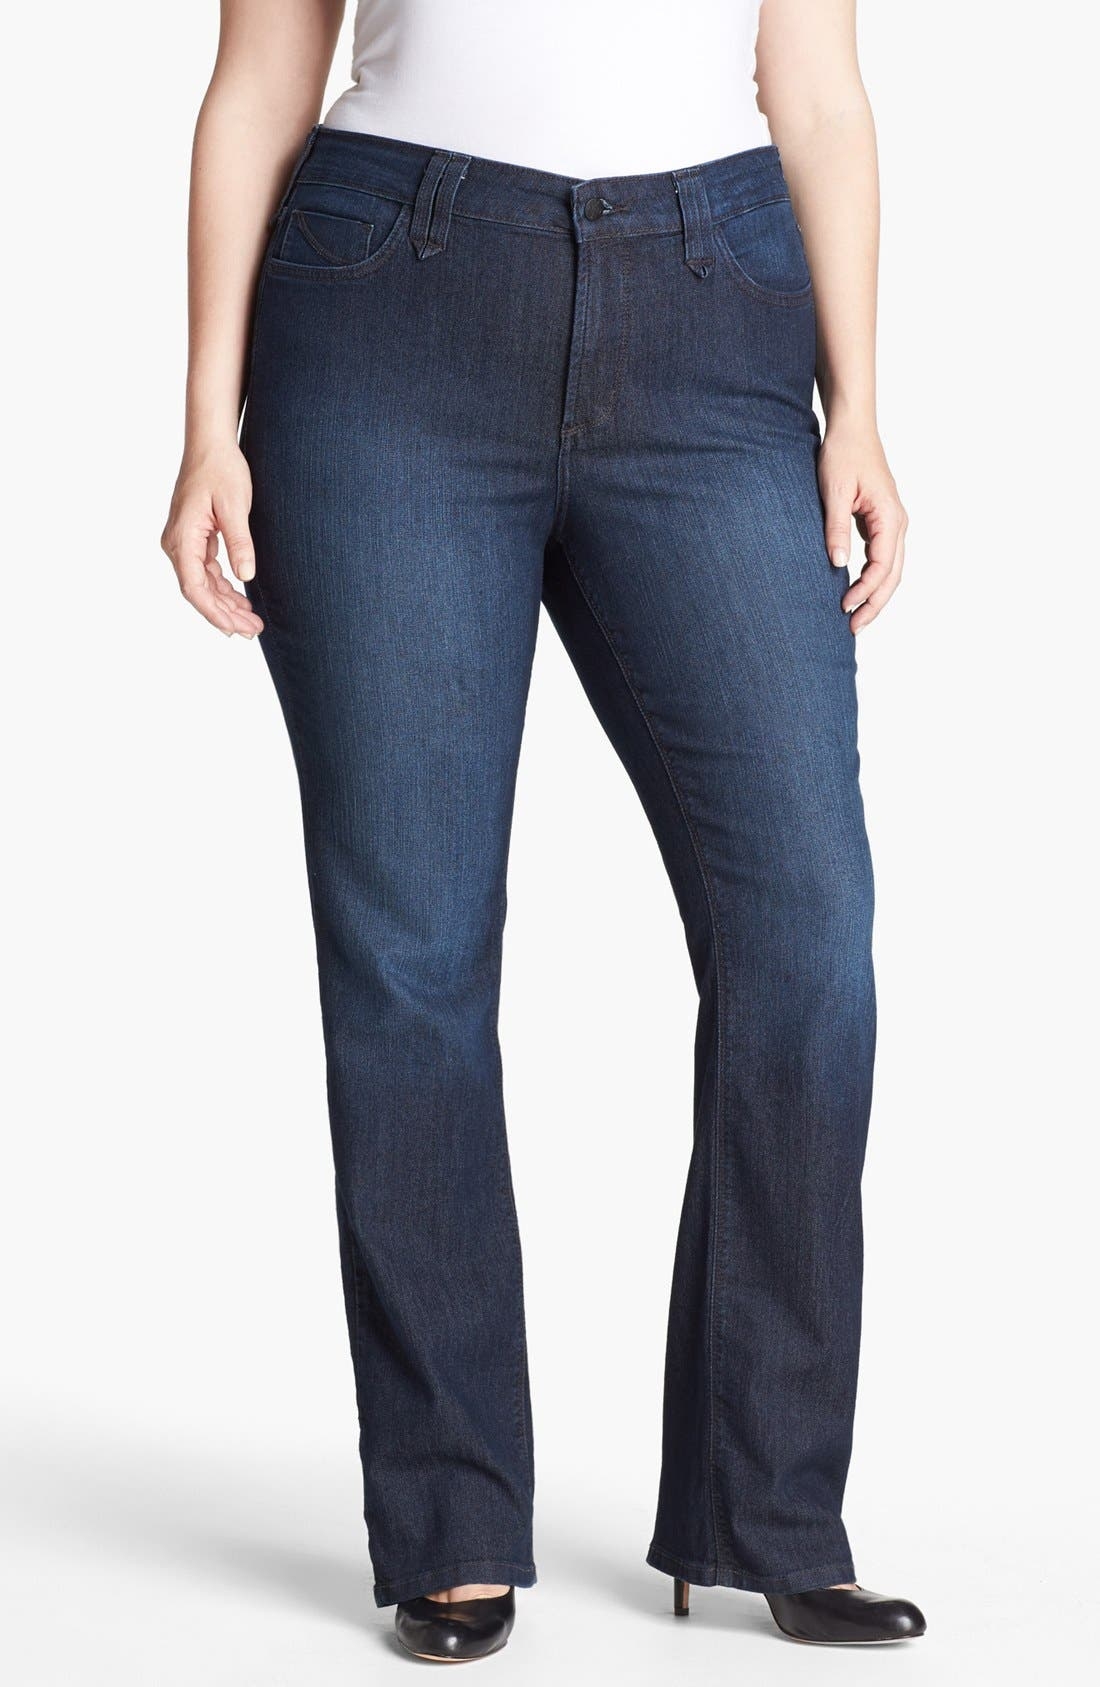 Alternate Image 1 Selected - NYDJ 'Hayden' Stretch Straight Leg Jeans (Burbank) (Plus Size)